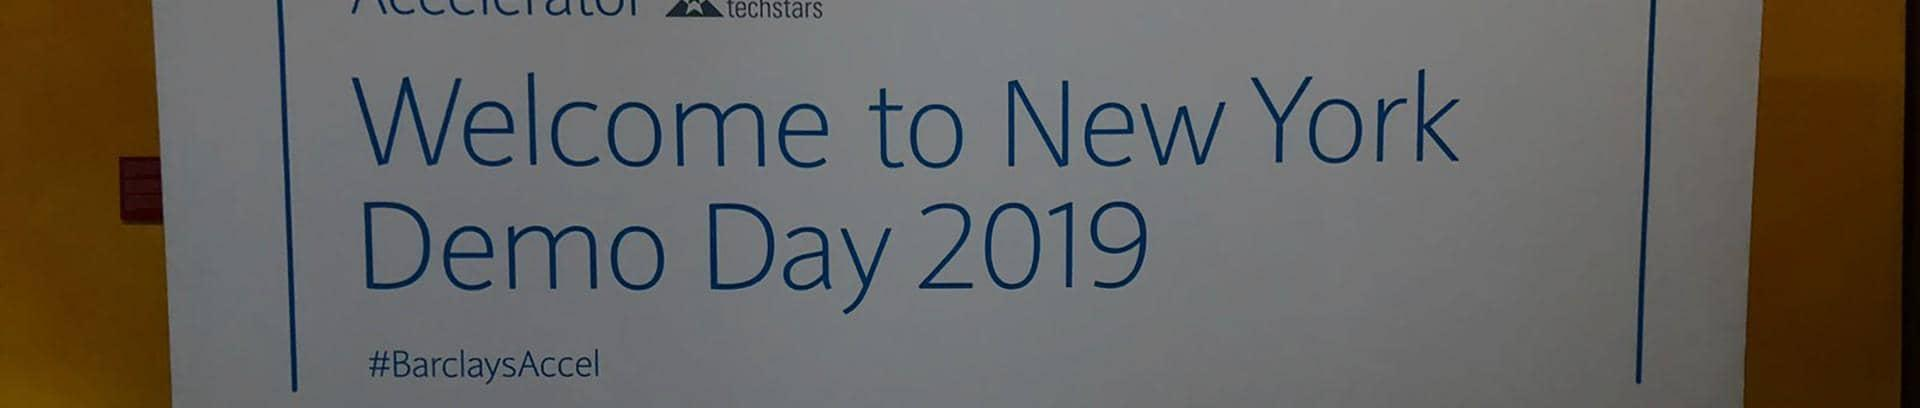 2019 New York Barclays Accelerator, powered by Techstars Demo Day